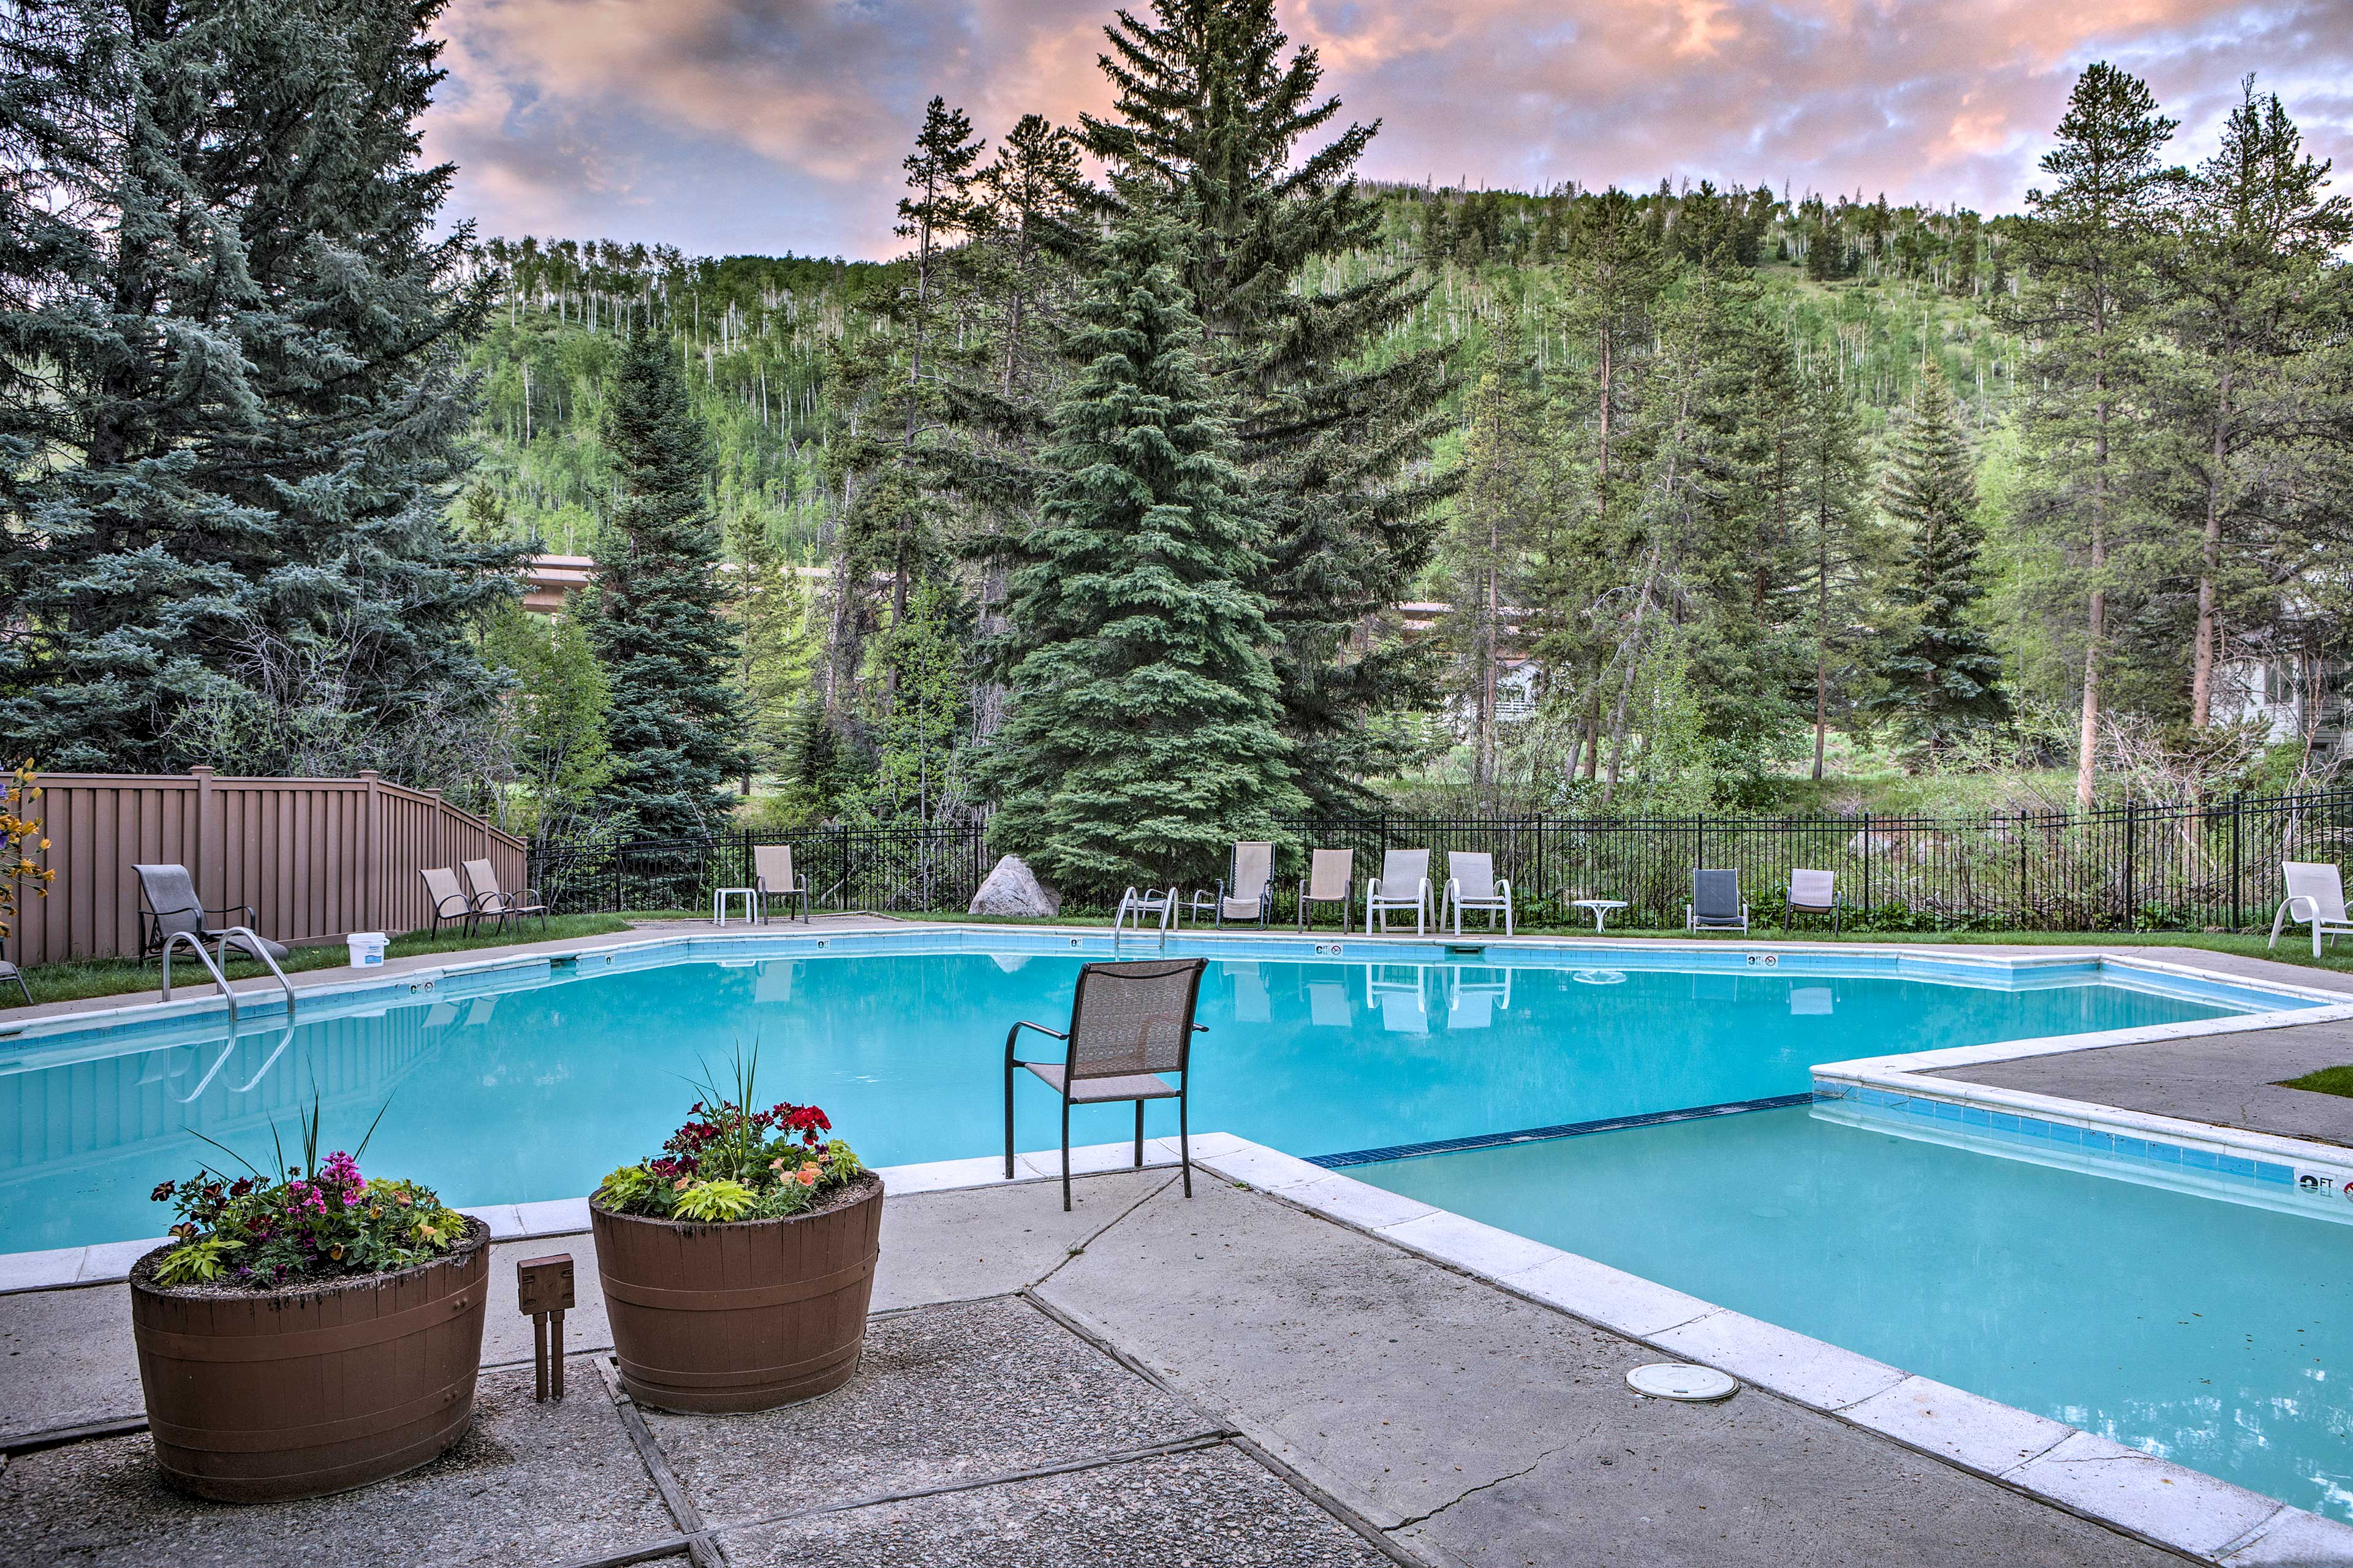 This pool is surrounded by beautiful forest views.